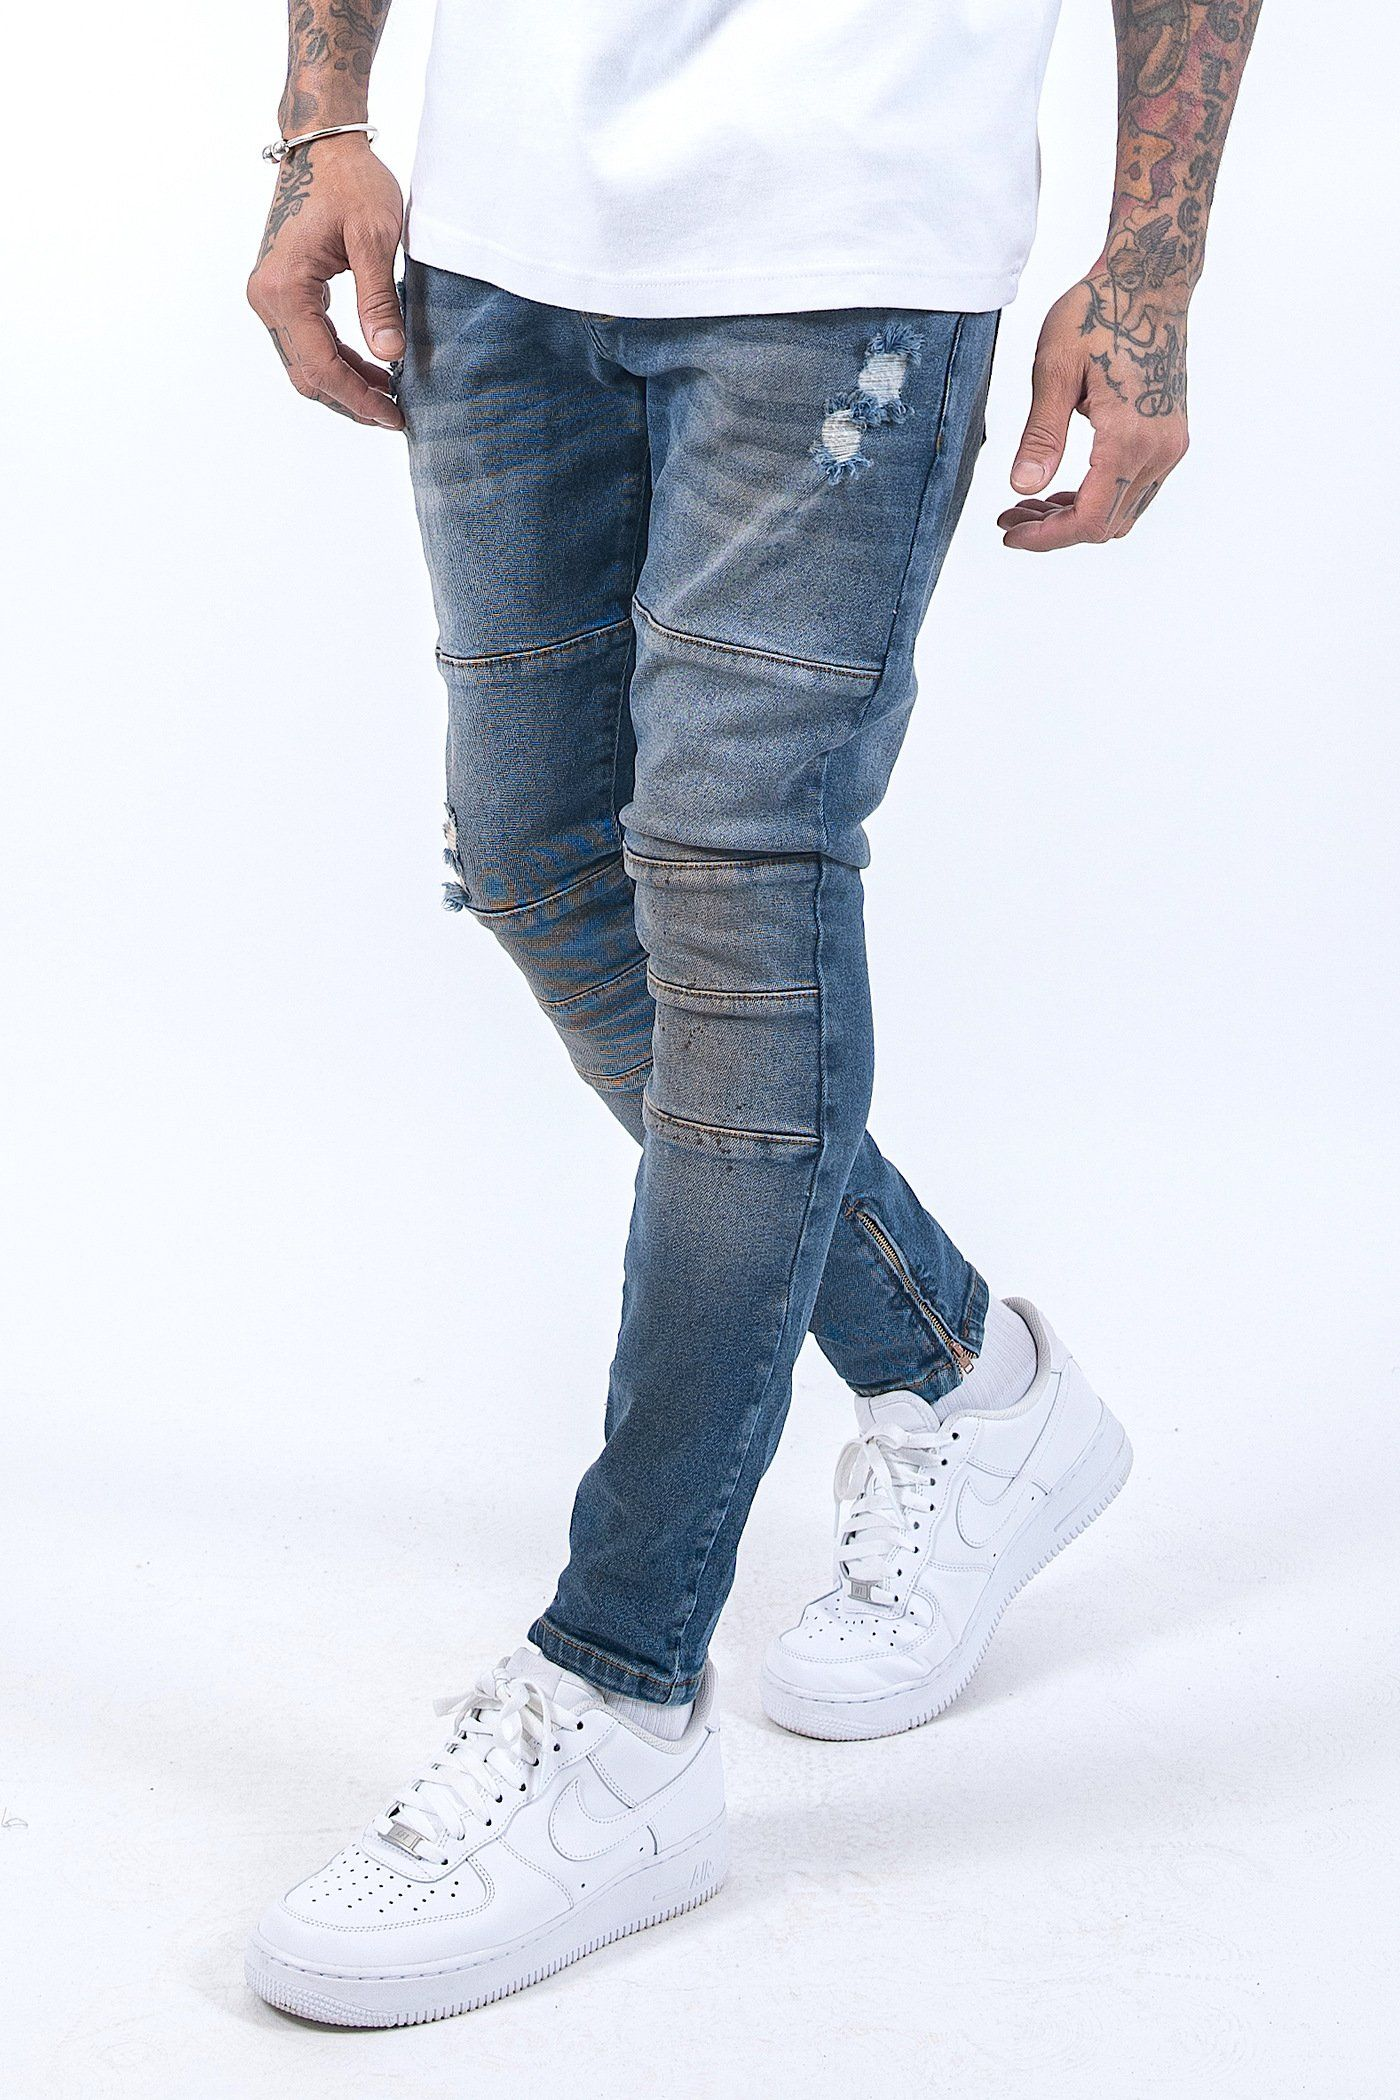 Thiago Jeans Washed Blue - PEGADOR - Dominate the Hype